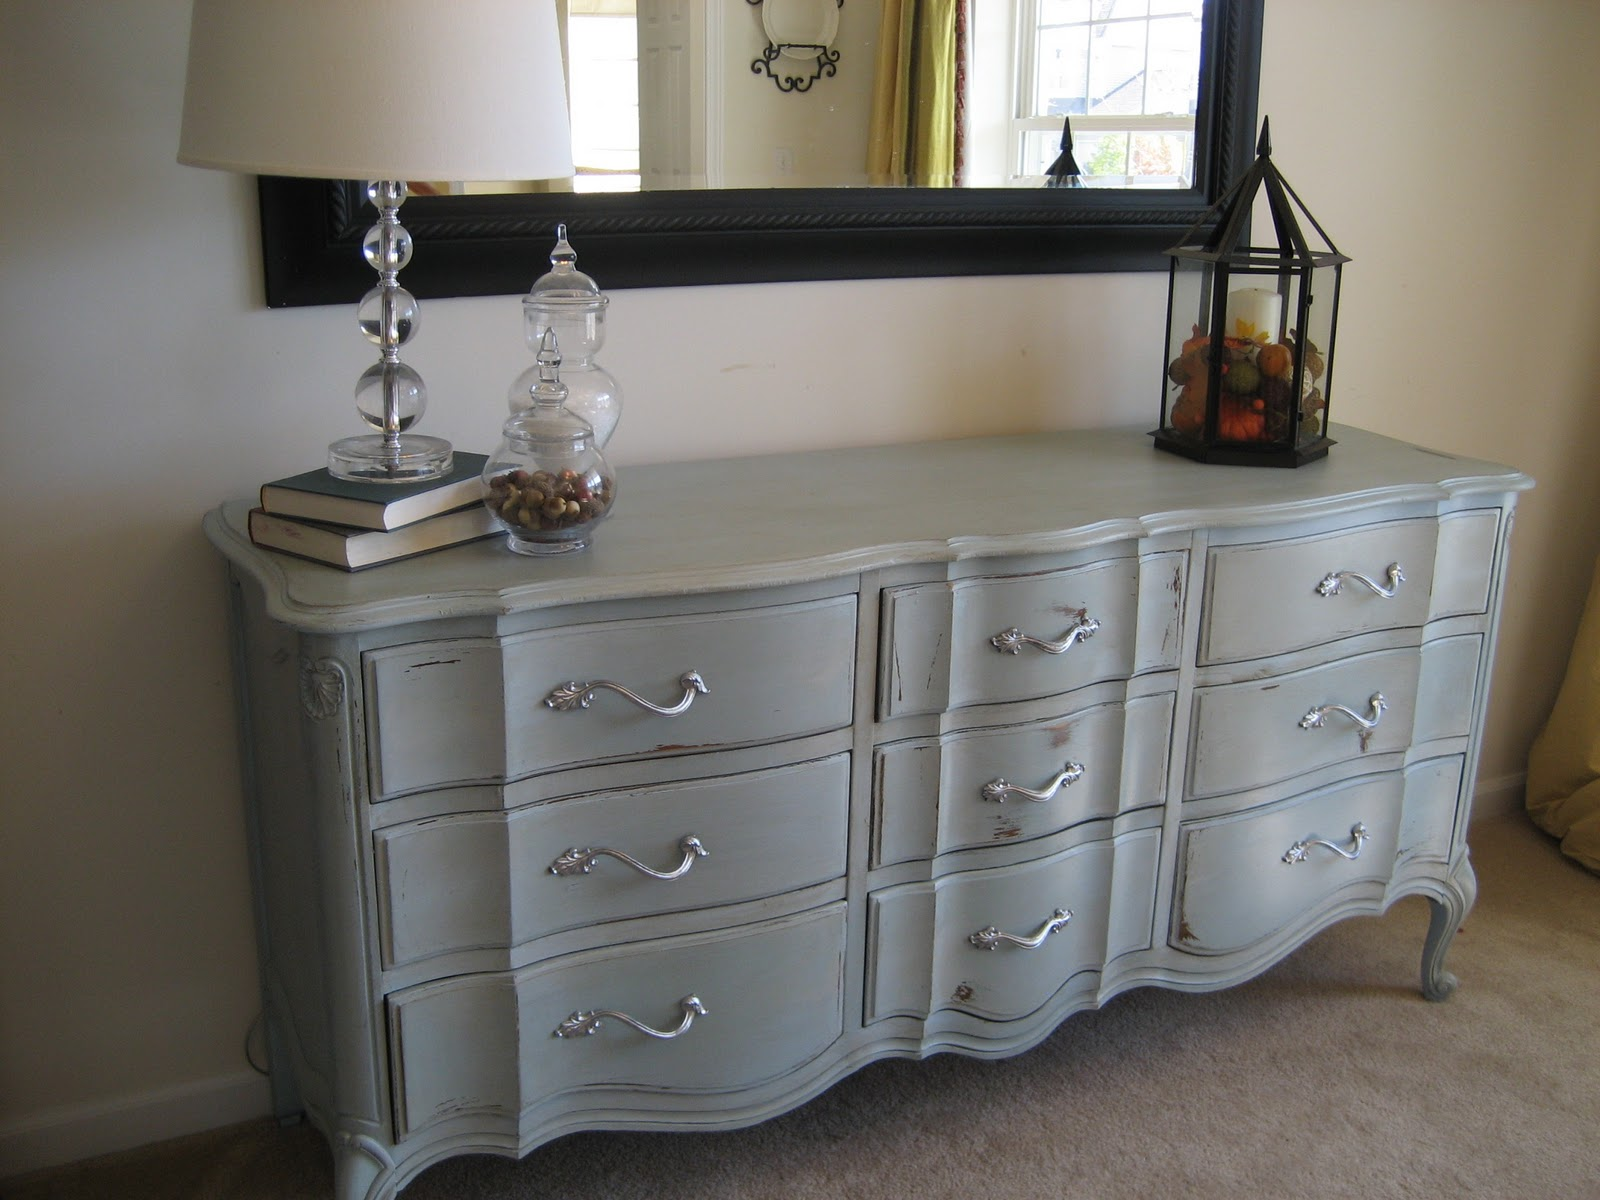 Impatiently Praying For Patience A Bluegrey Dresser. Beachy Shower Curtains. Capital Remodeling Reviews. Rustic Dressers. Duraceramic Tile. Farmhouse Sink Faucet. Portland Direct Tile. White River Granite. Wood Mode